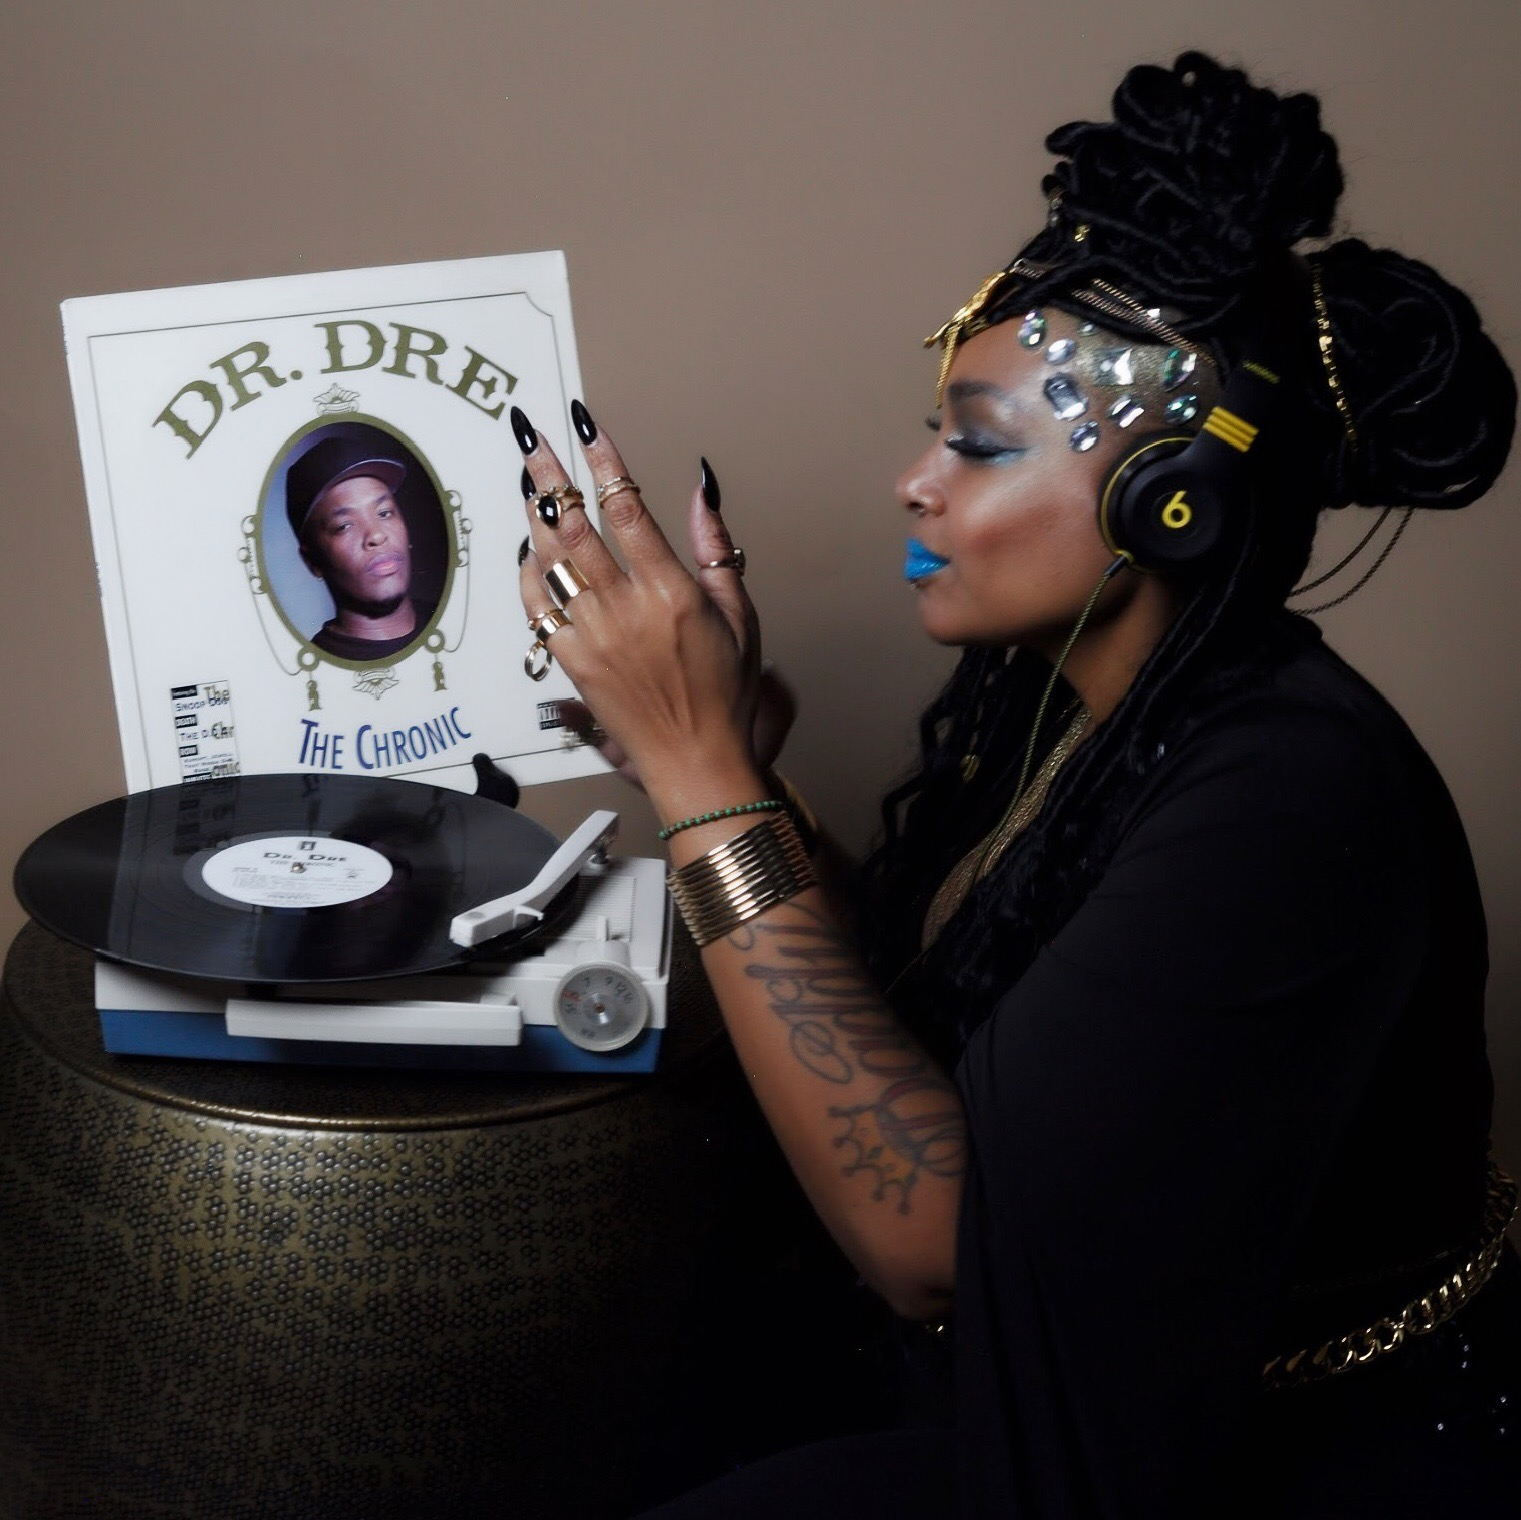 Steffan - Artform Artist Steffan wakes up with a new vision everyday. She feels blessed that her artistry is God sent, and her inspirations are just able to flow.This classic record is always on rotation thanks to the Steffan...